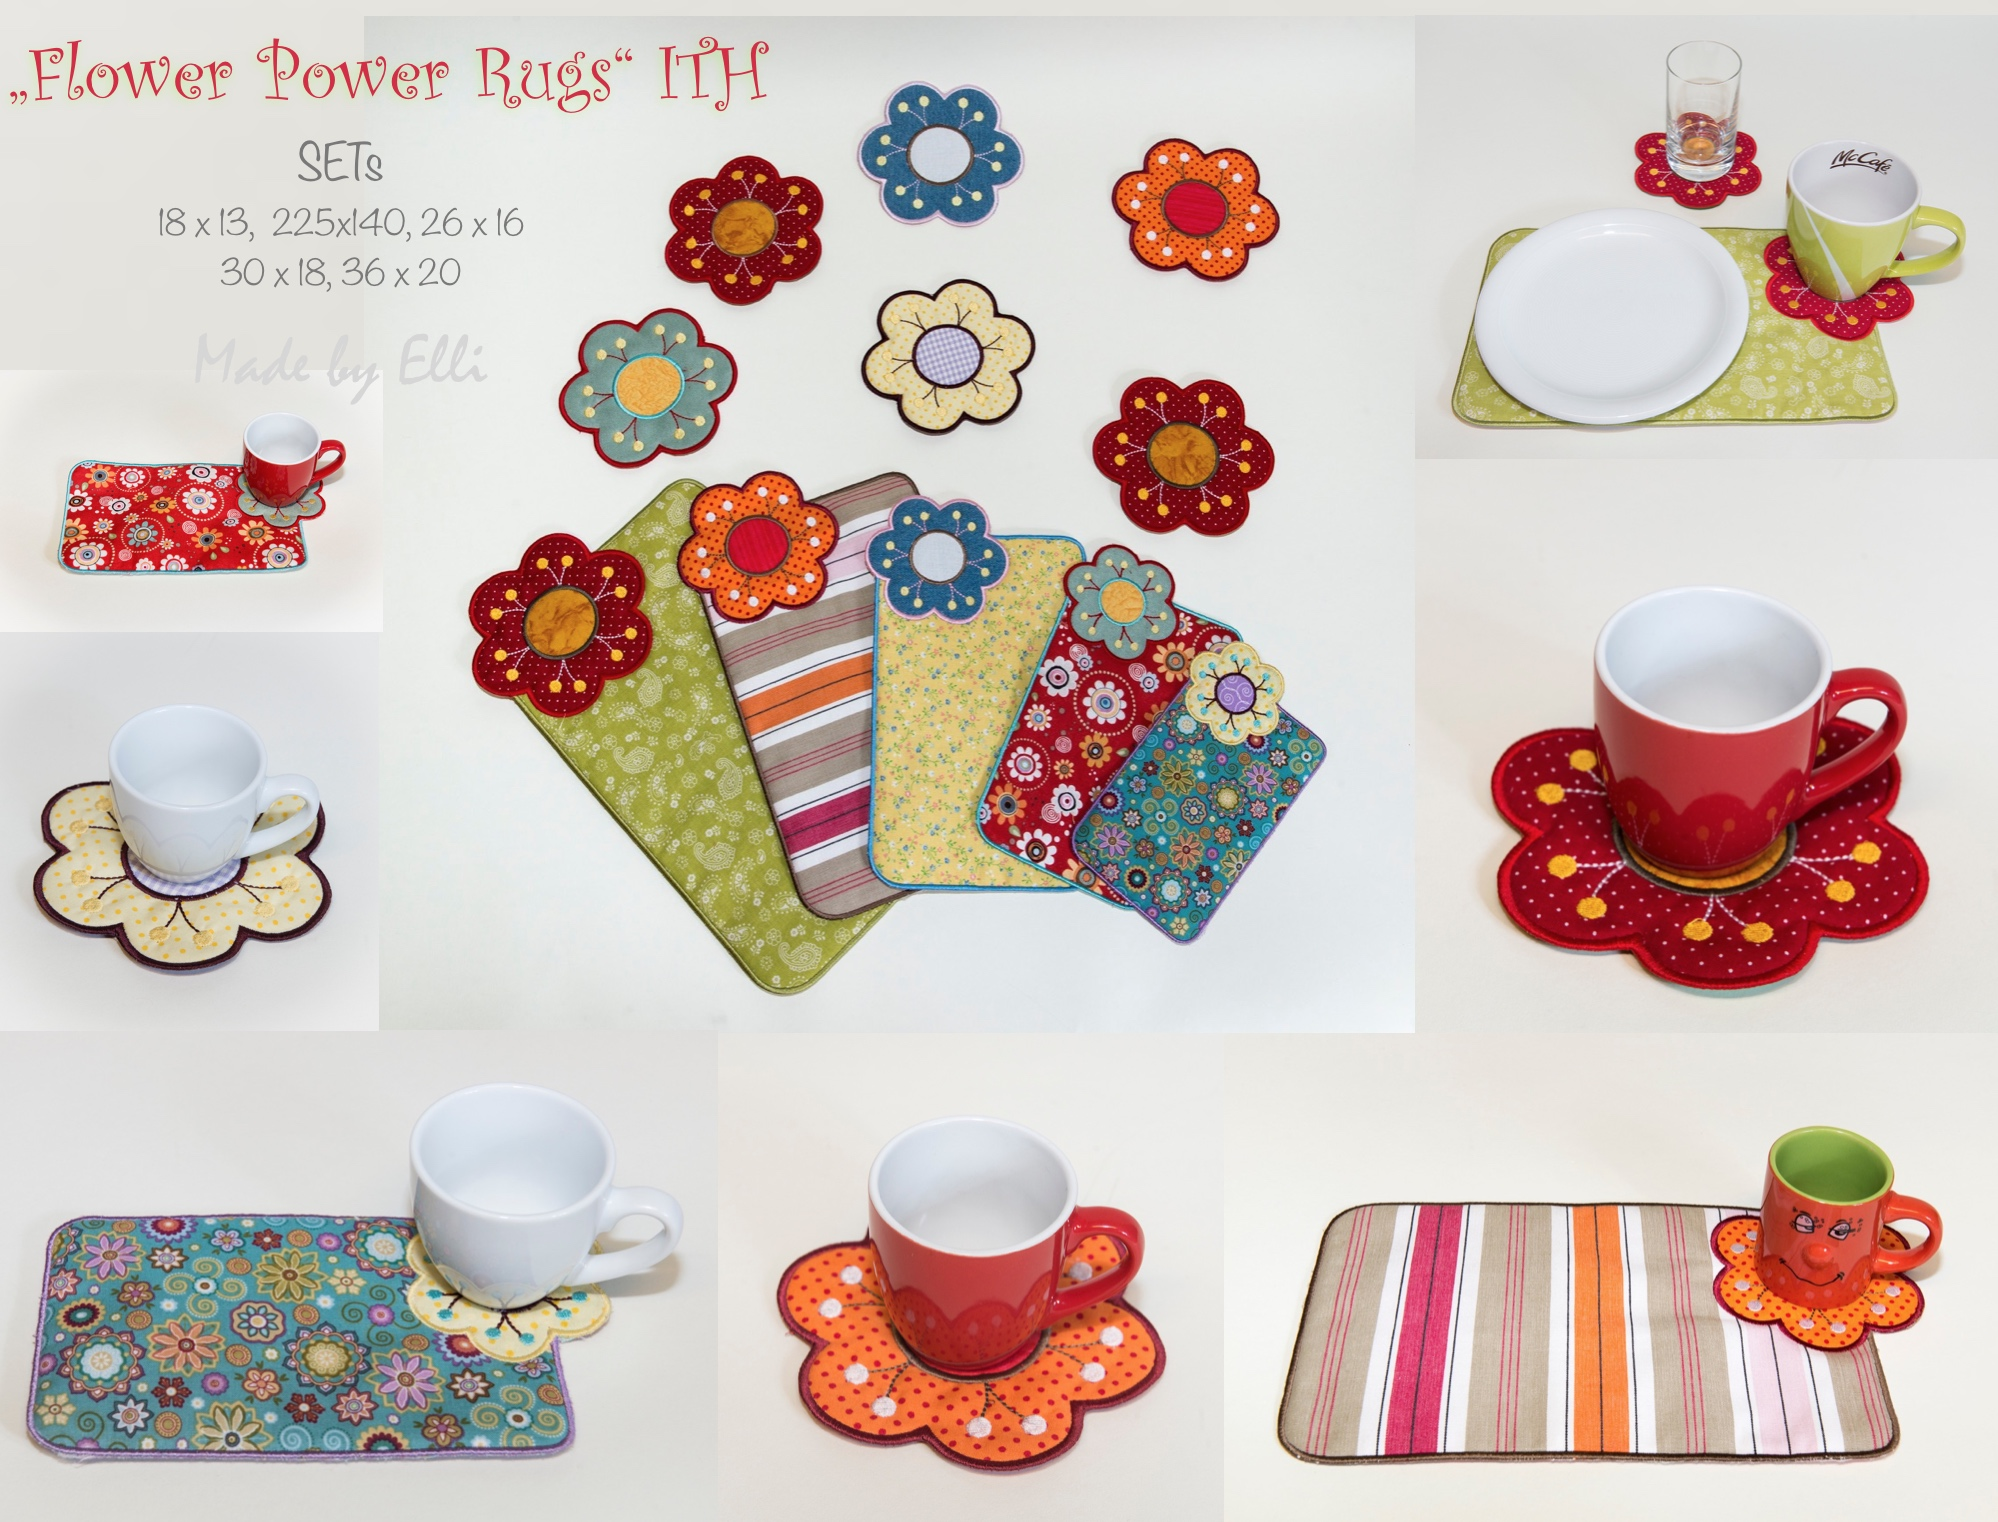 Flower Power Rugs ITH